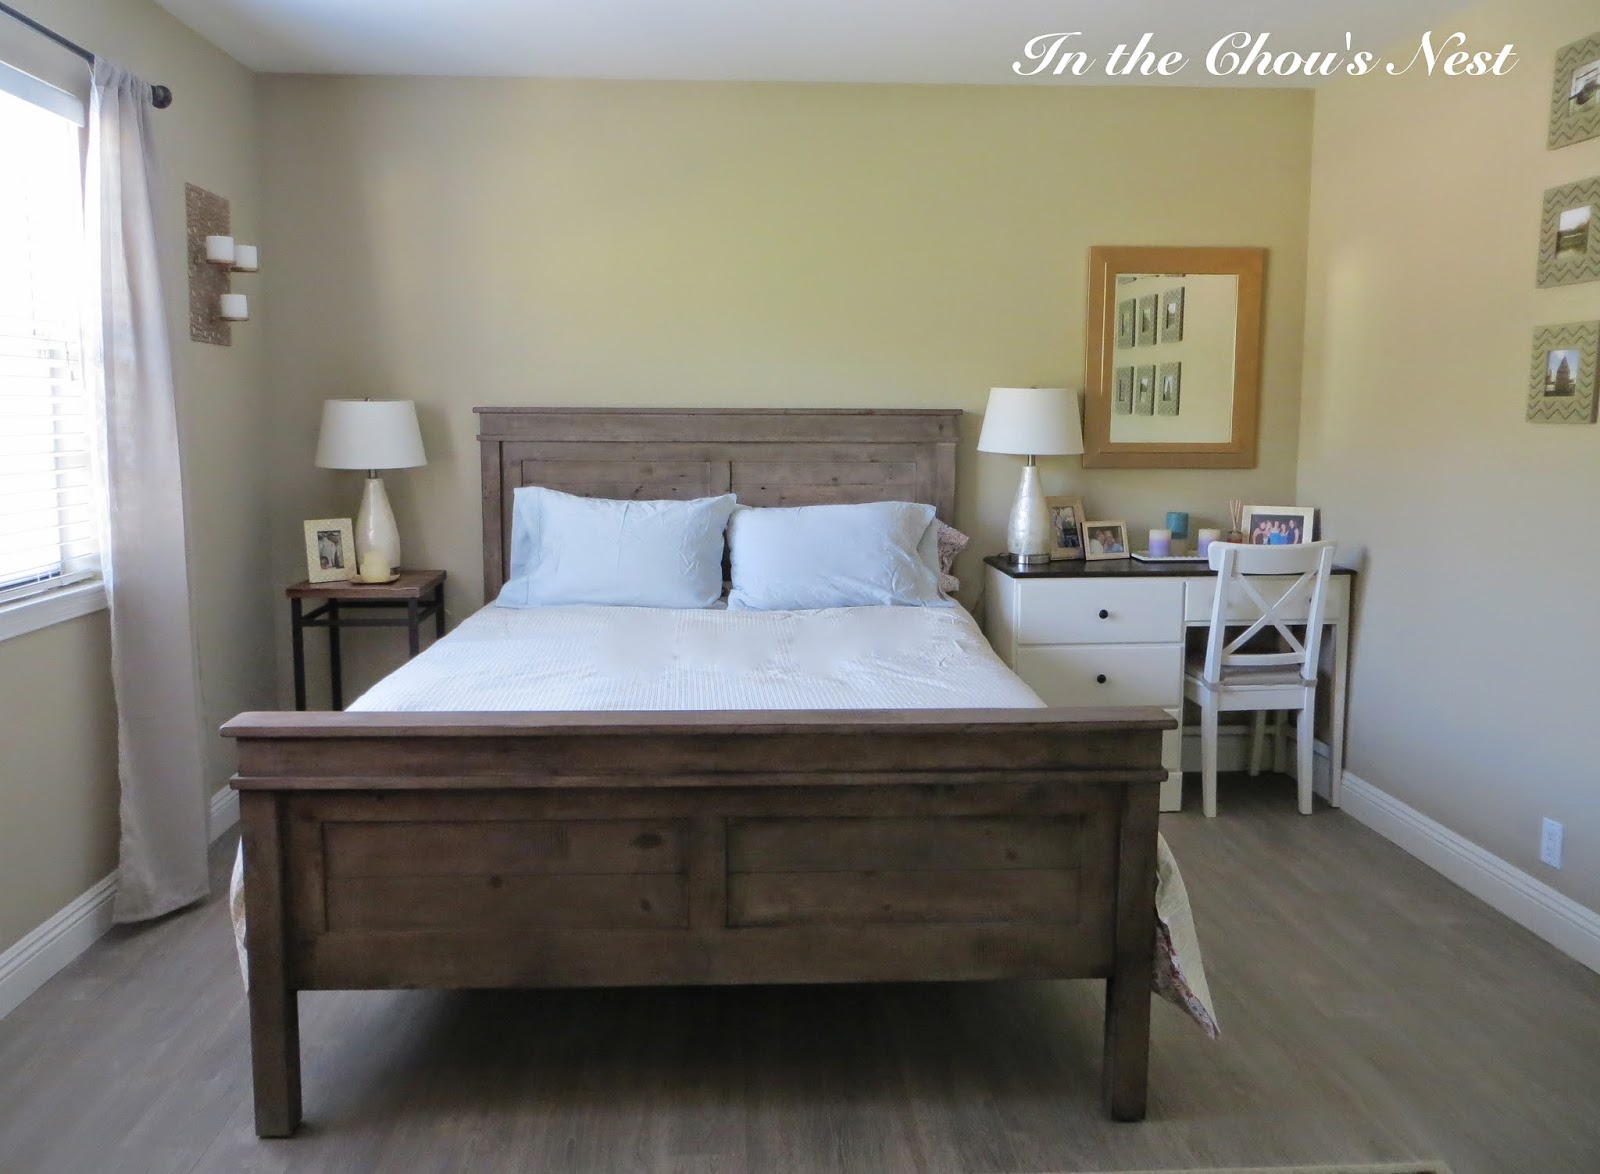 Popular Curtains Home Goods Nightstand Table Ross Bed Cost Plus World Market